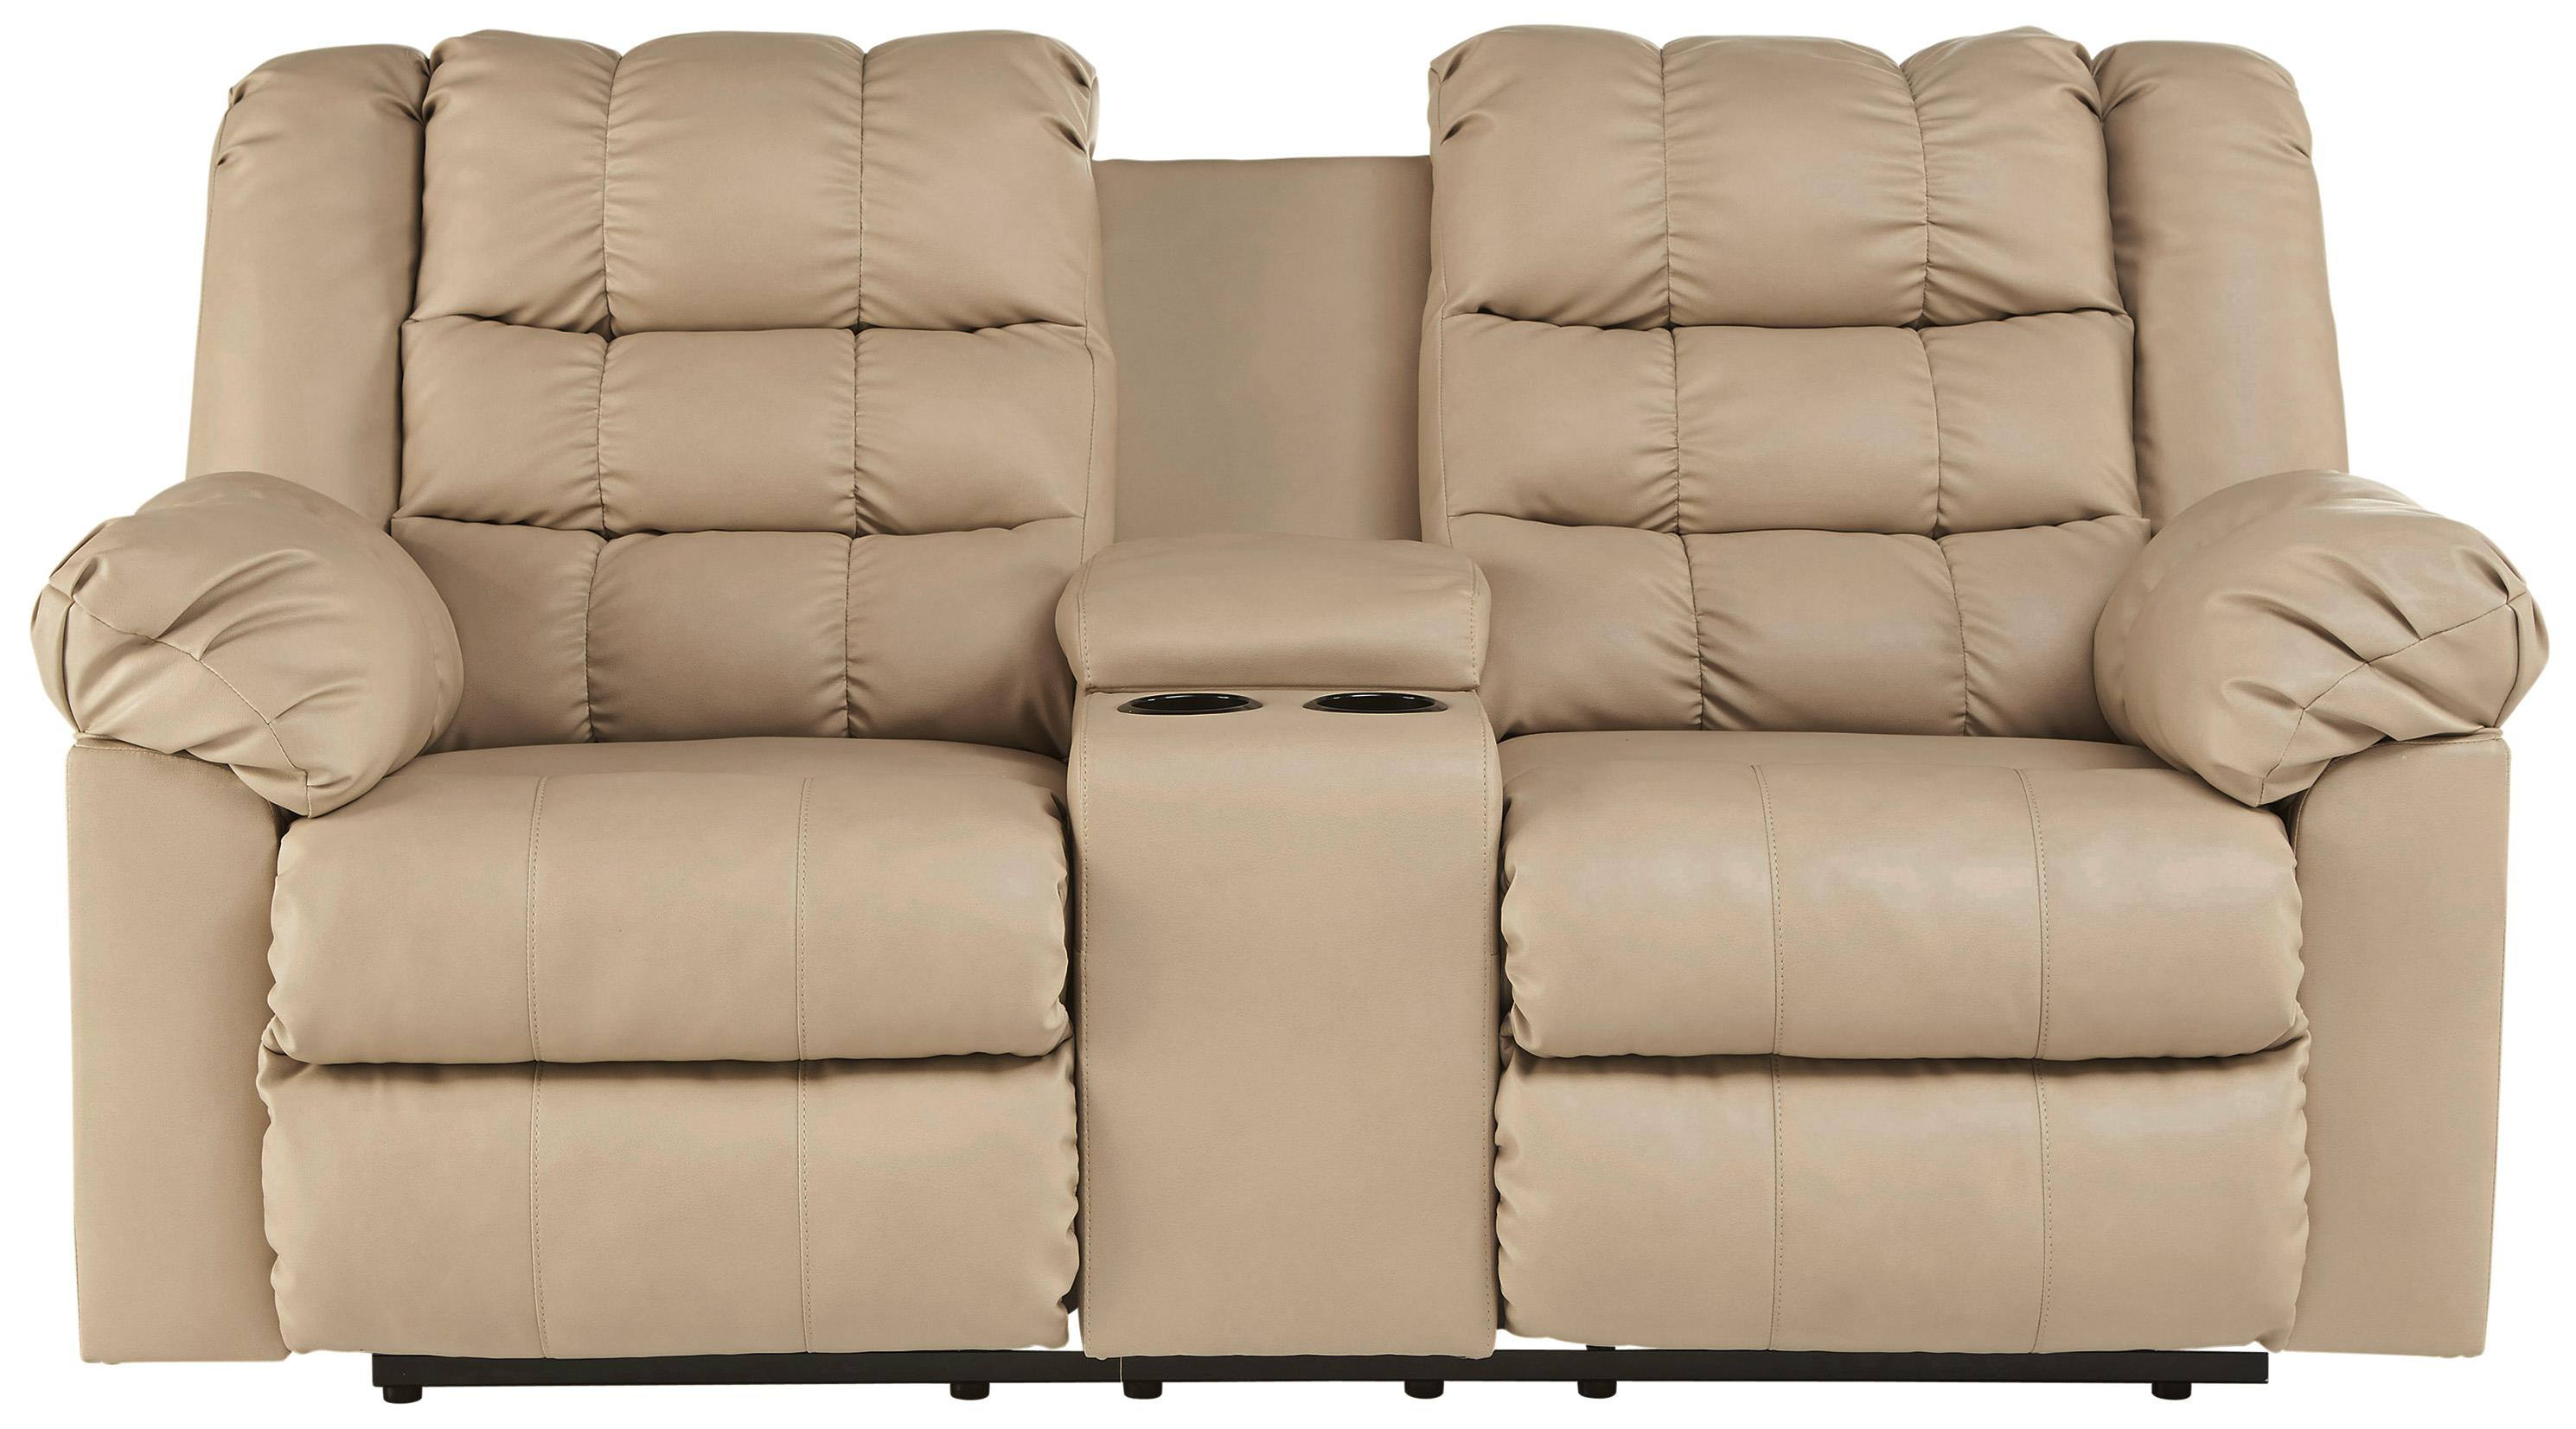 Signature Design by Ashley Brolayne DuraBlend® Double Reclining Loveseat w/ Console - Item Number: 8320194